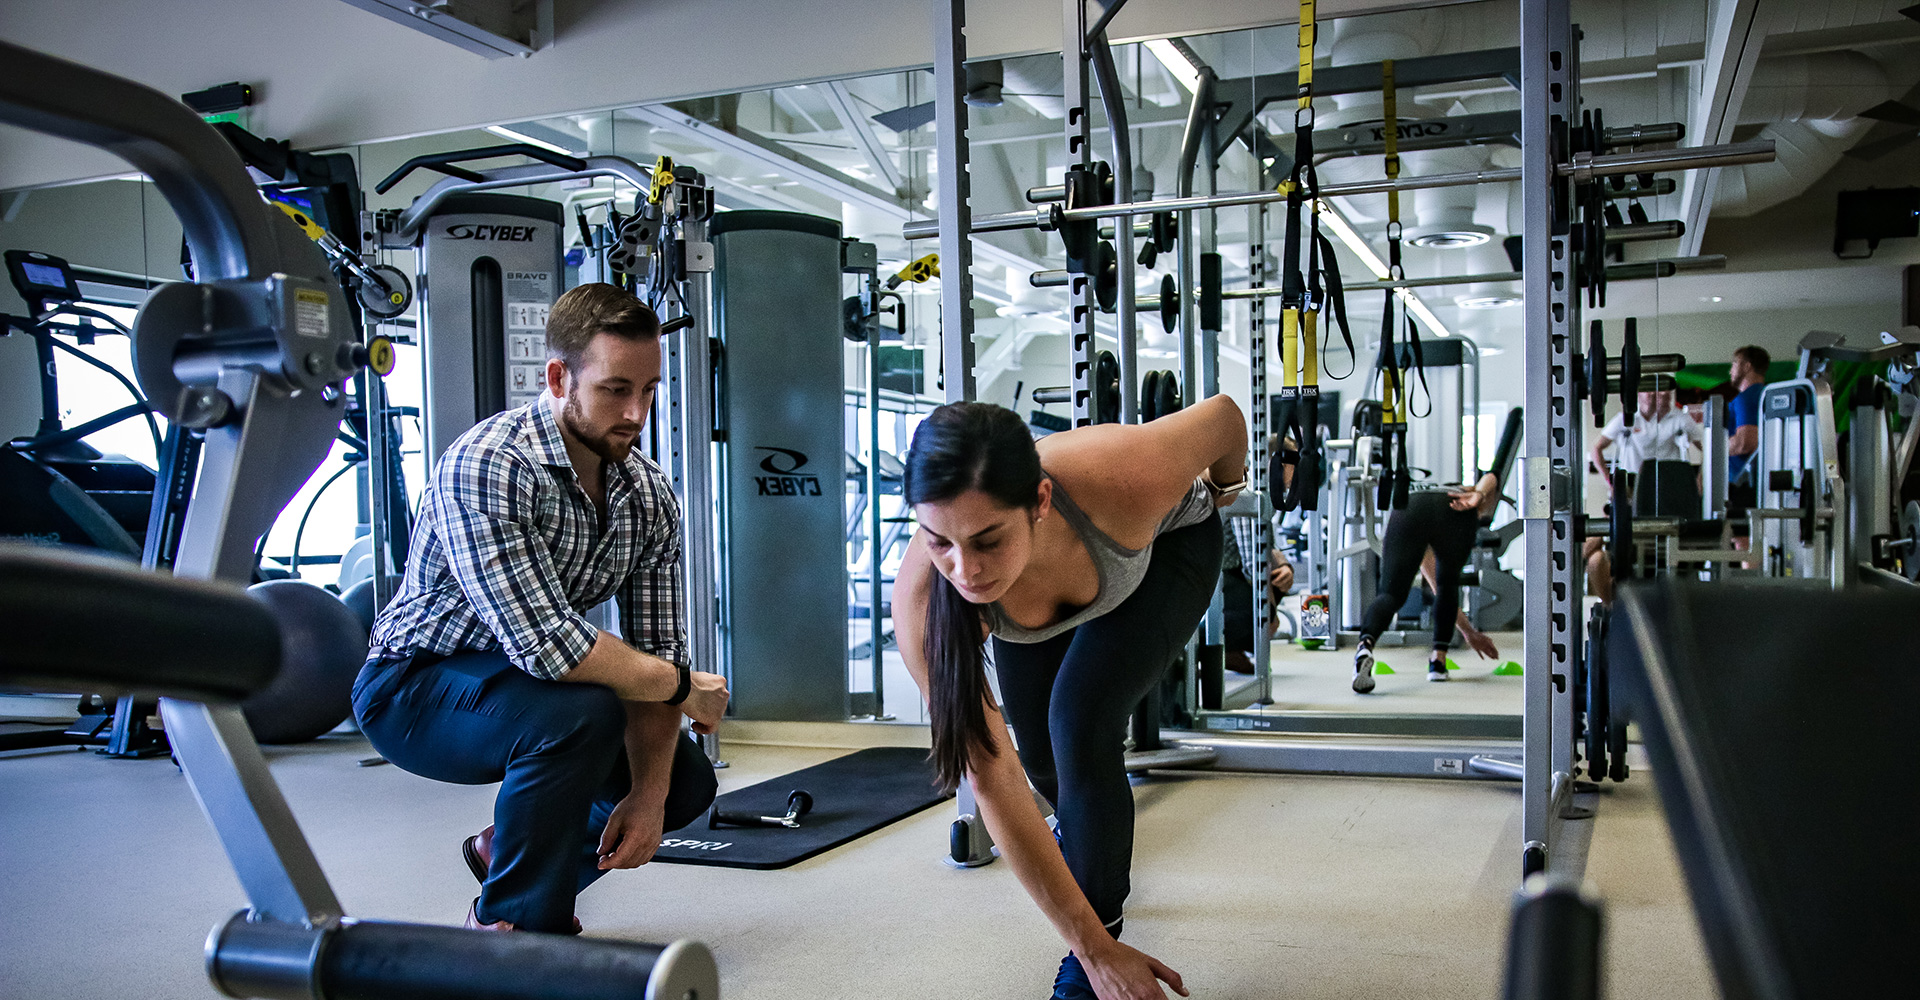 Therapeutic exercises can restore and maintain strength, muscular endurance, flexibility, mobility, balance, and more. At USA Sports Therapy we offered Advanced Therapeutic Exercise. Our therapists are all exercise specialists, and ready to assist you.